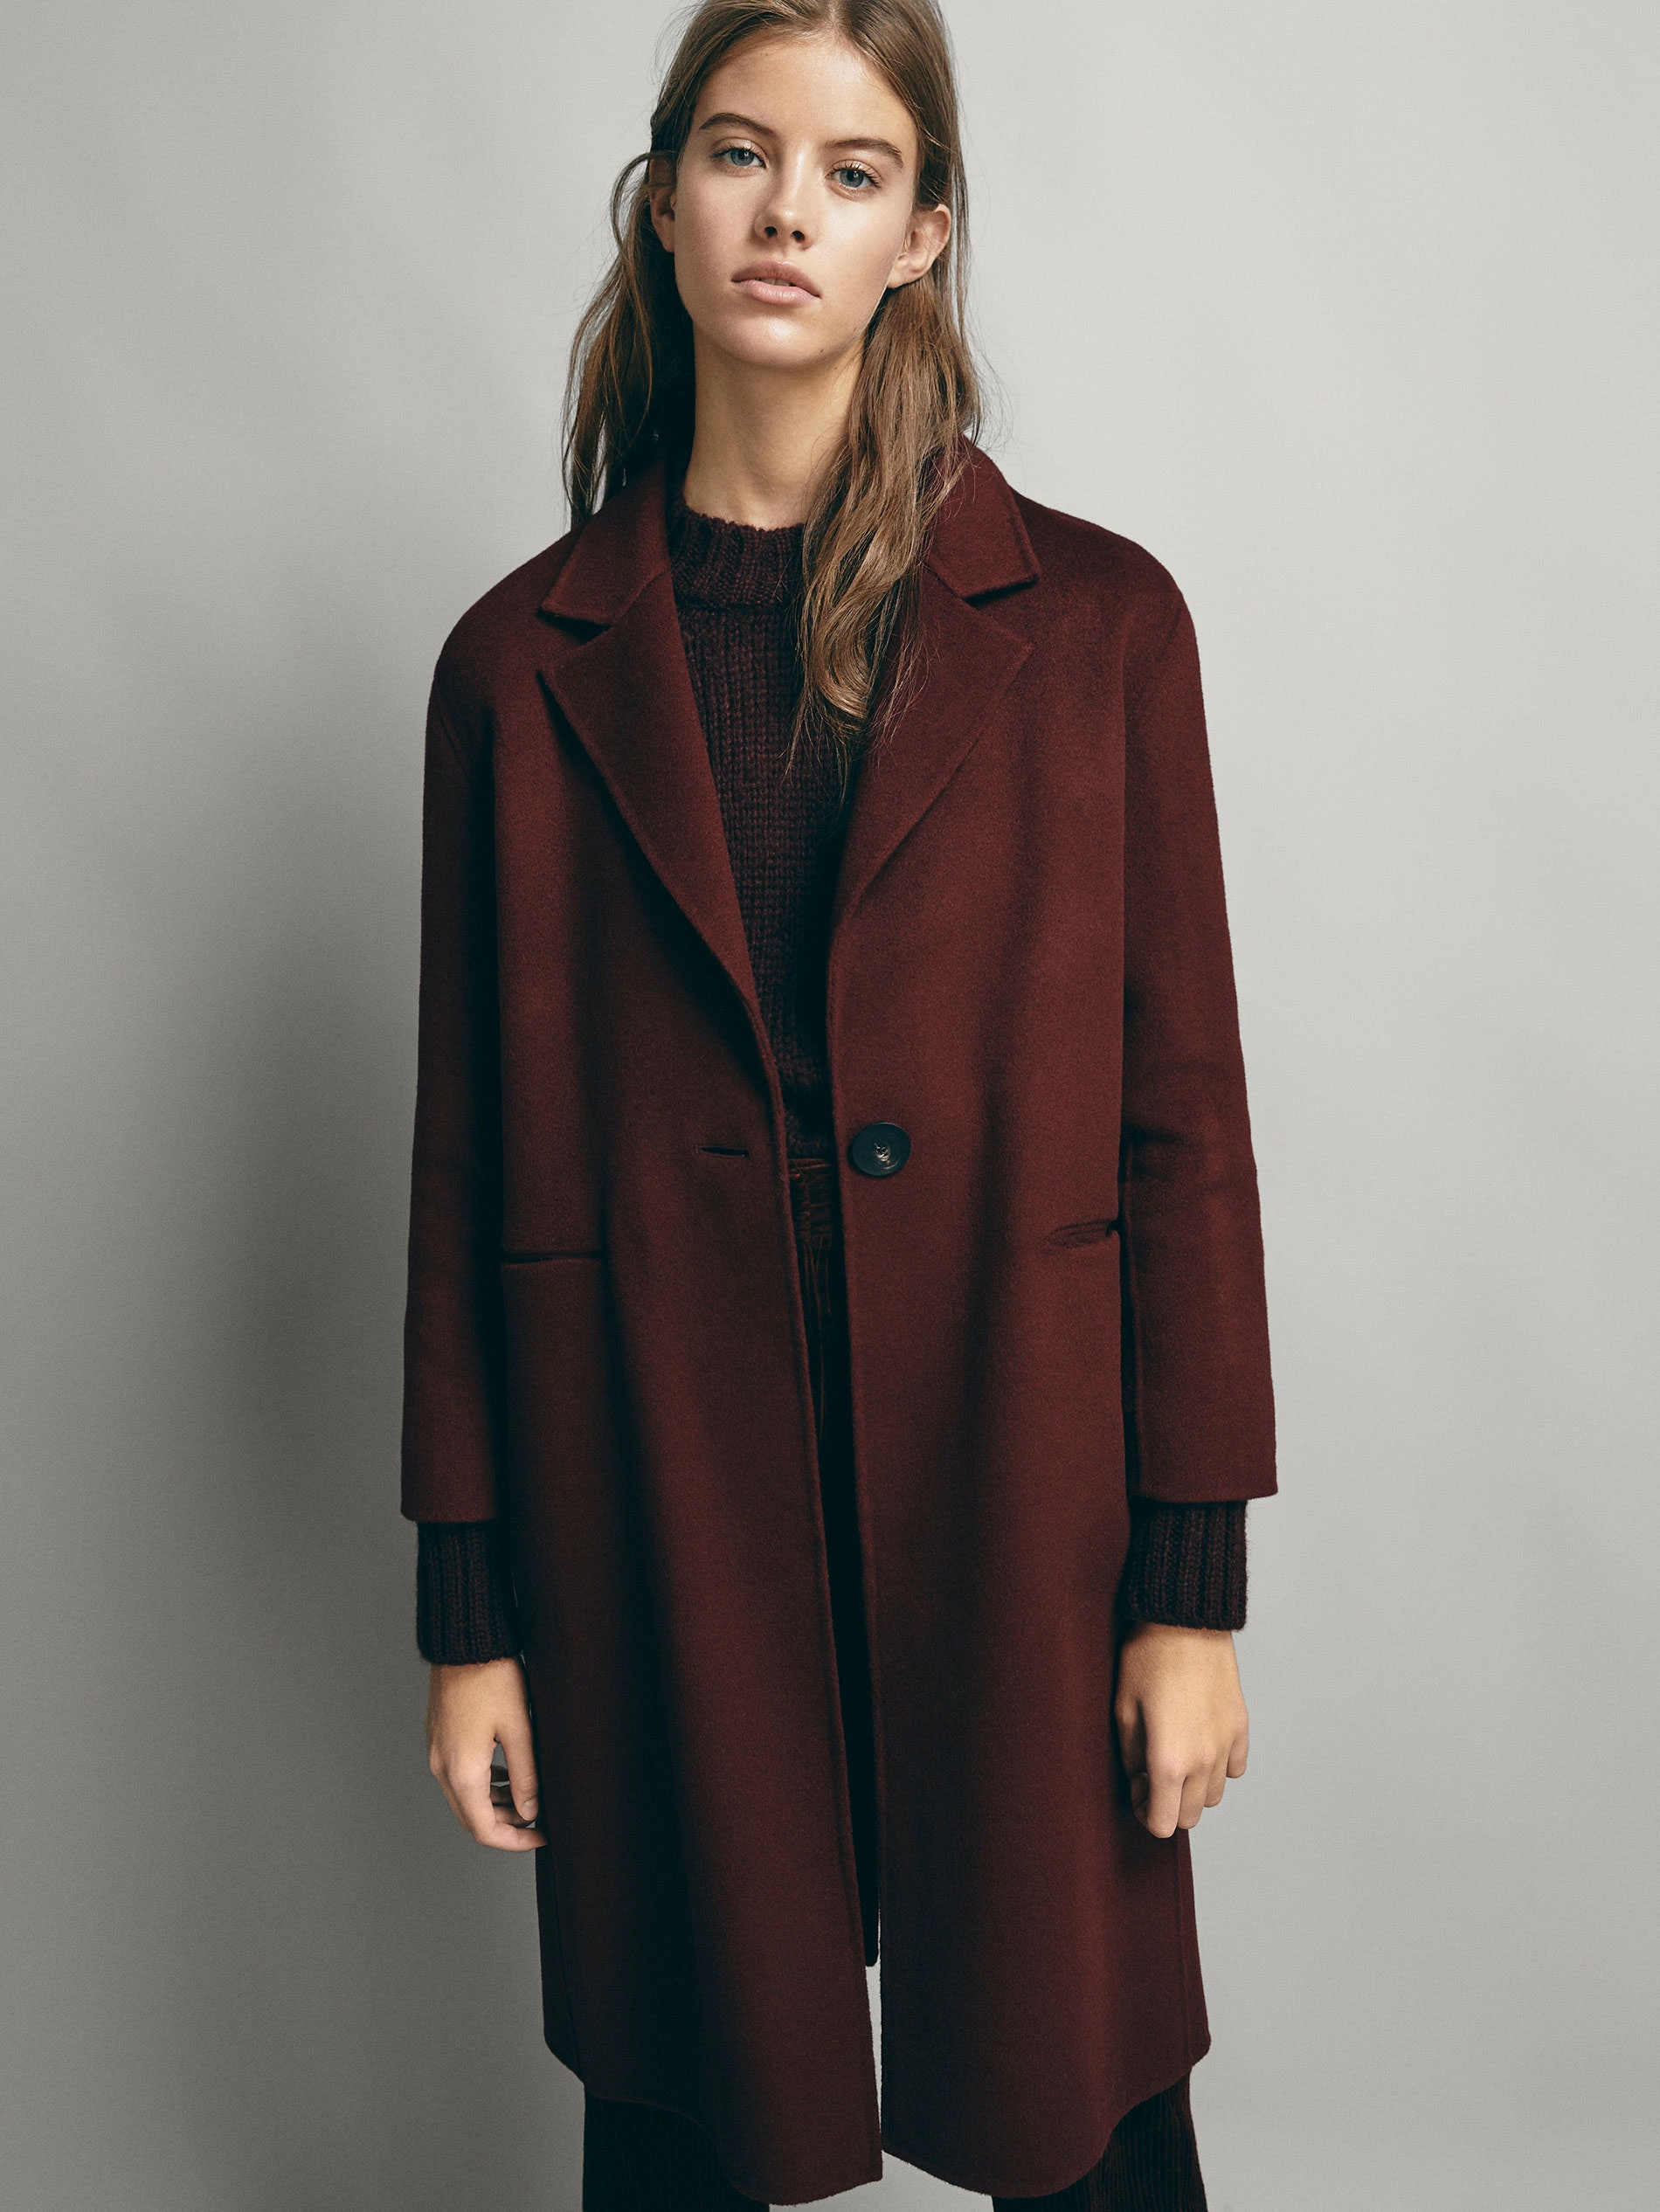 c2e6ad0cf46 The Best Affordable Winter Coats In Massimo Dutti's Sale, Including A  Puffer Jacket Under $100